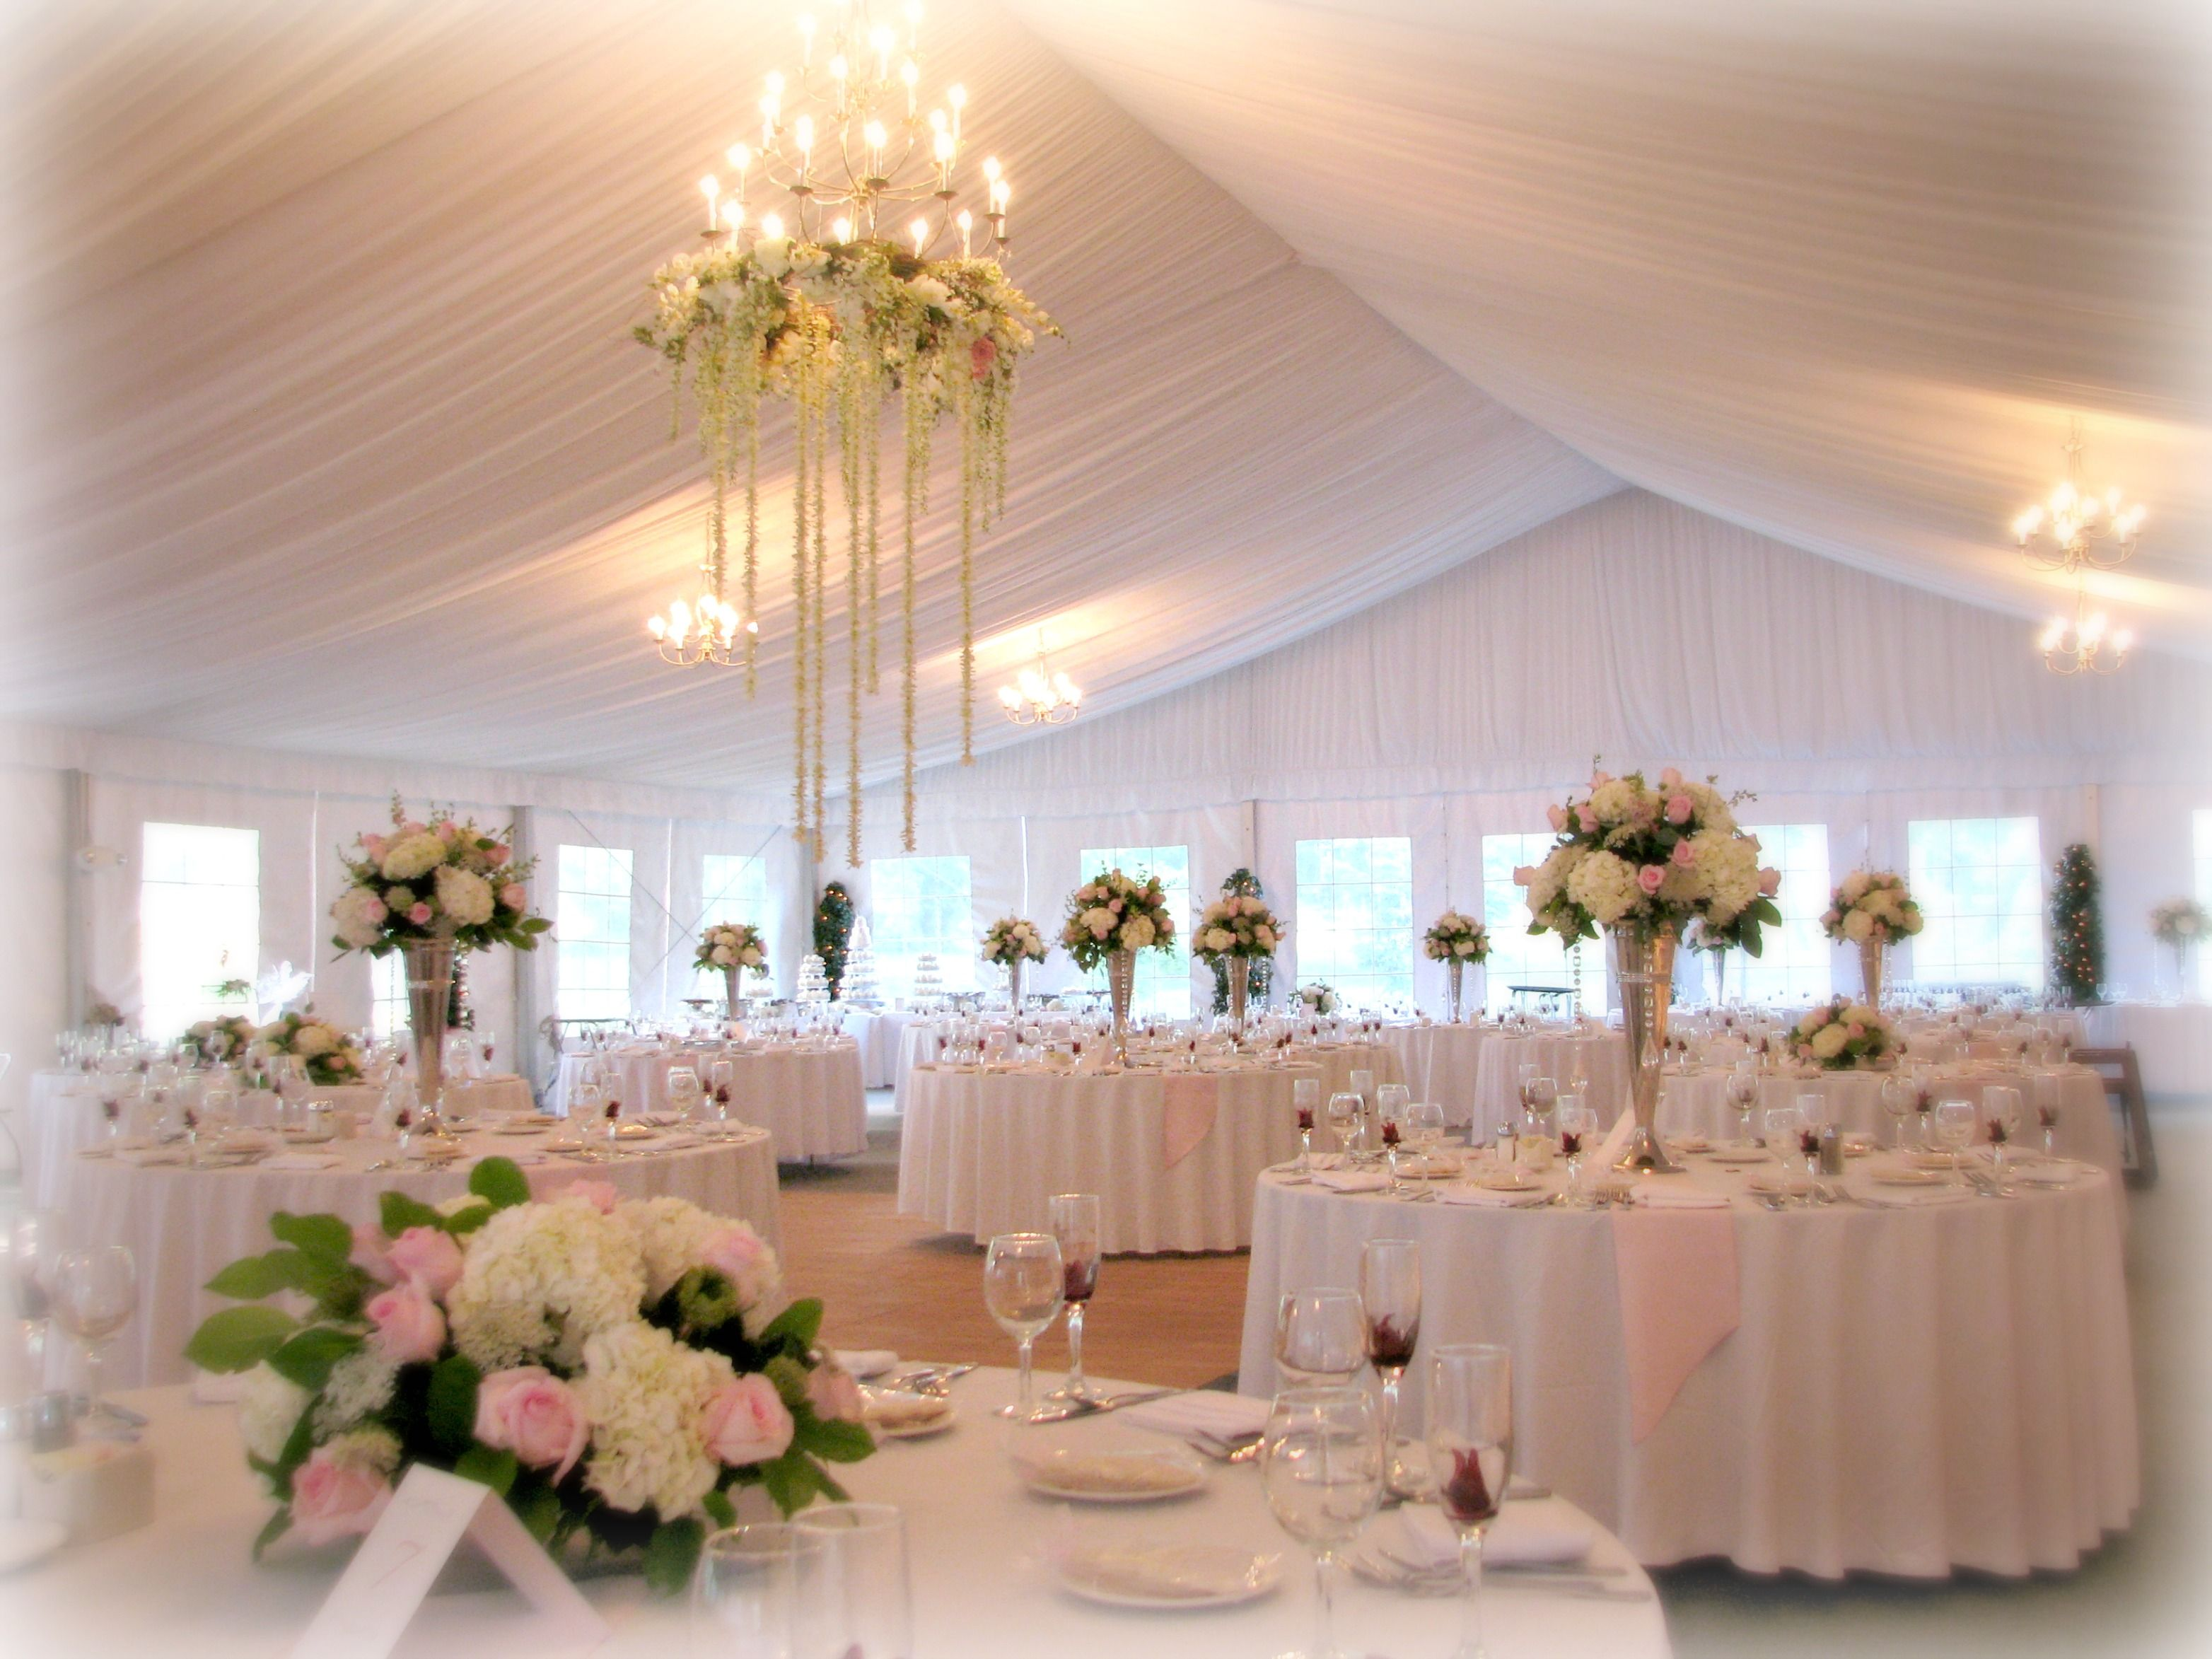 Beautiful Weddings: The Abbey Resort's Tent/Pavilion Setting For Your Next